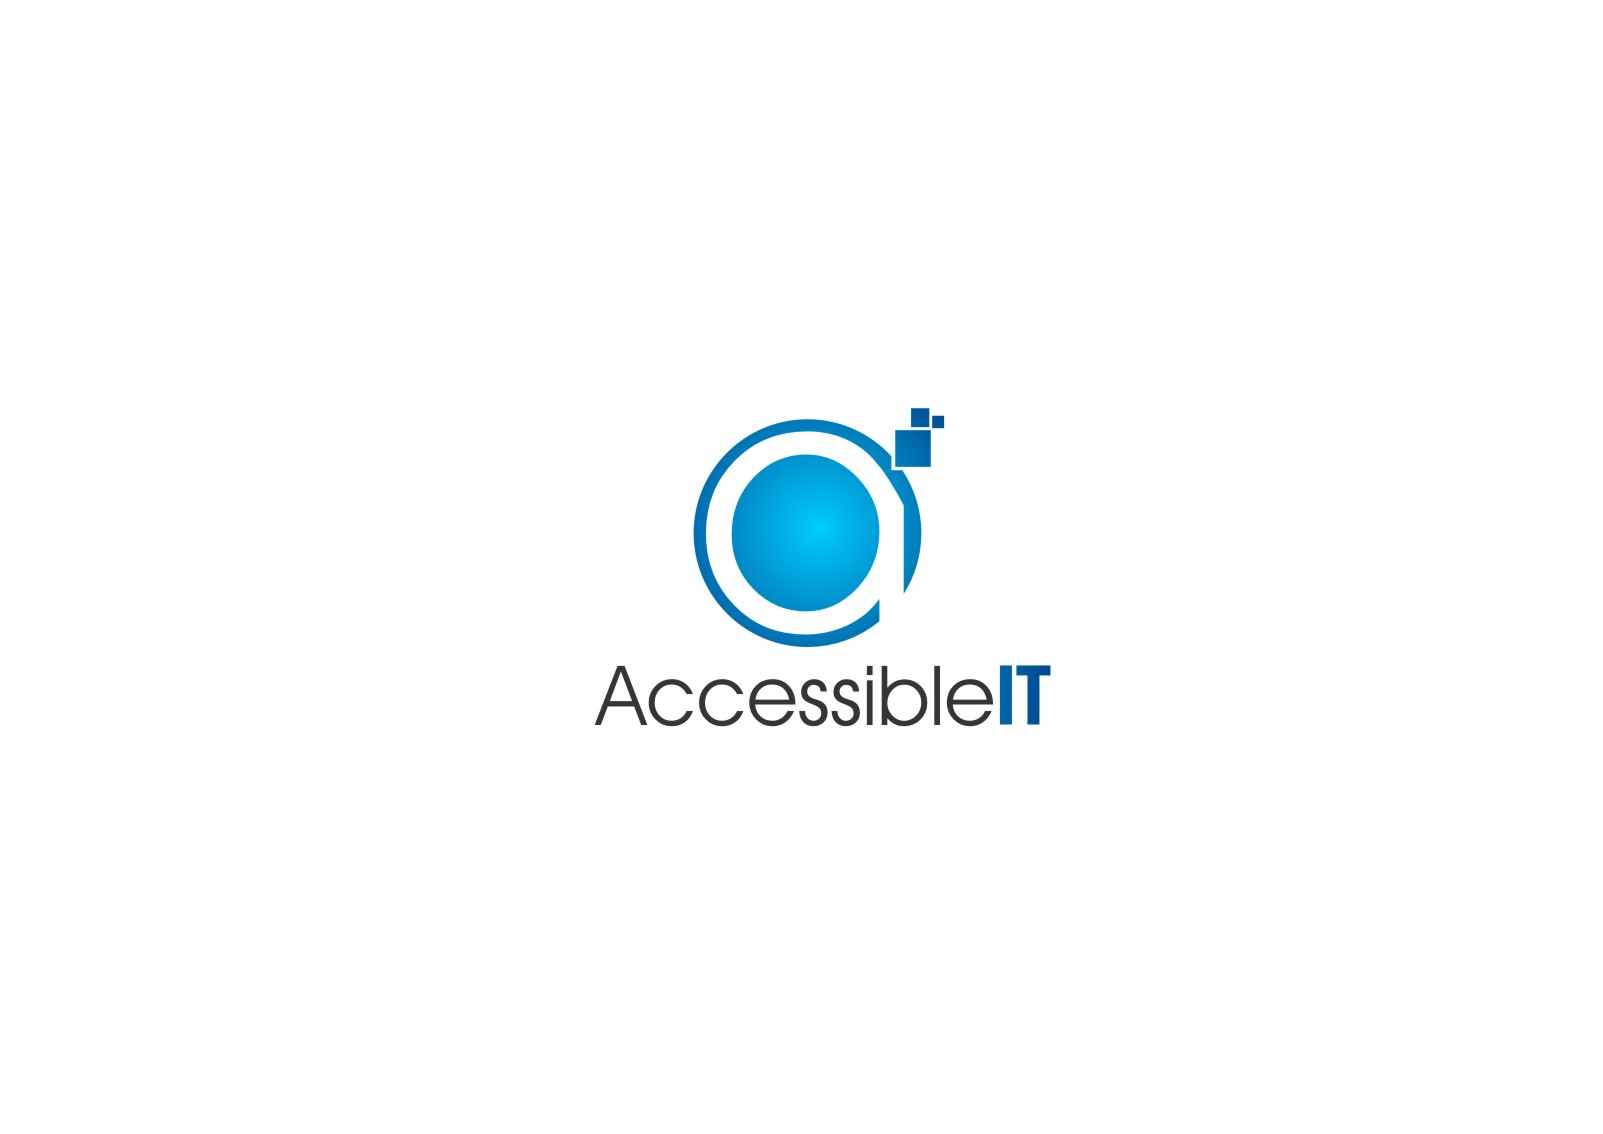 Logo Design by yanxsant - Entry No. 186 in the Logo Design Contest Logo Design Needed for Exciting New Company Accessible IT.